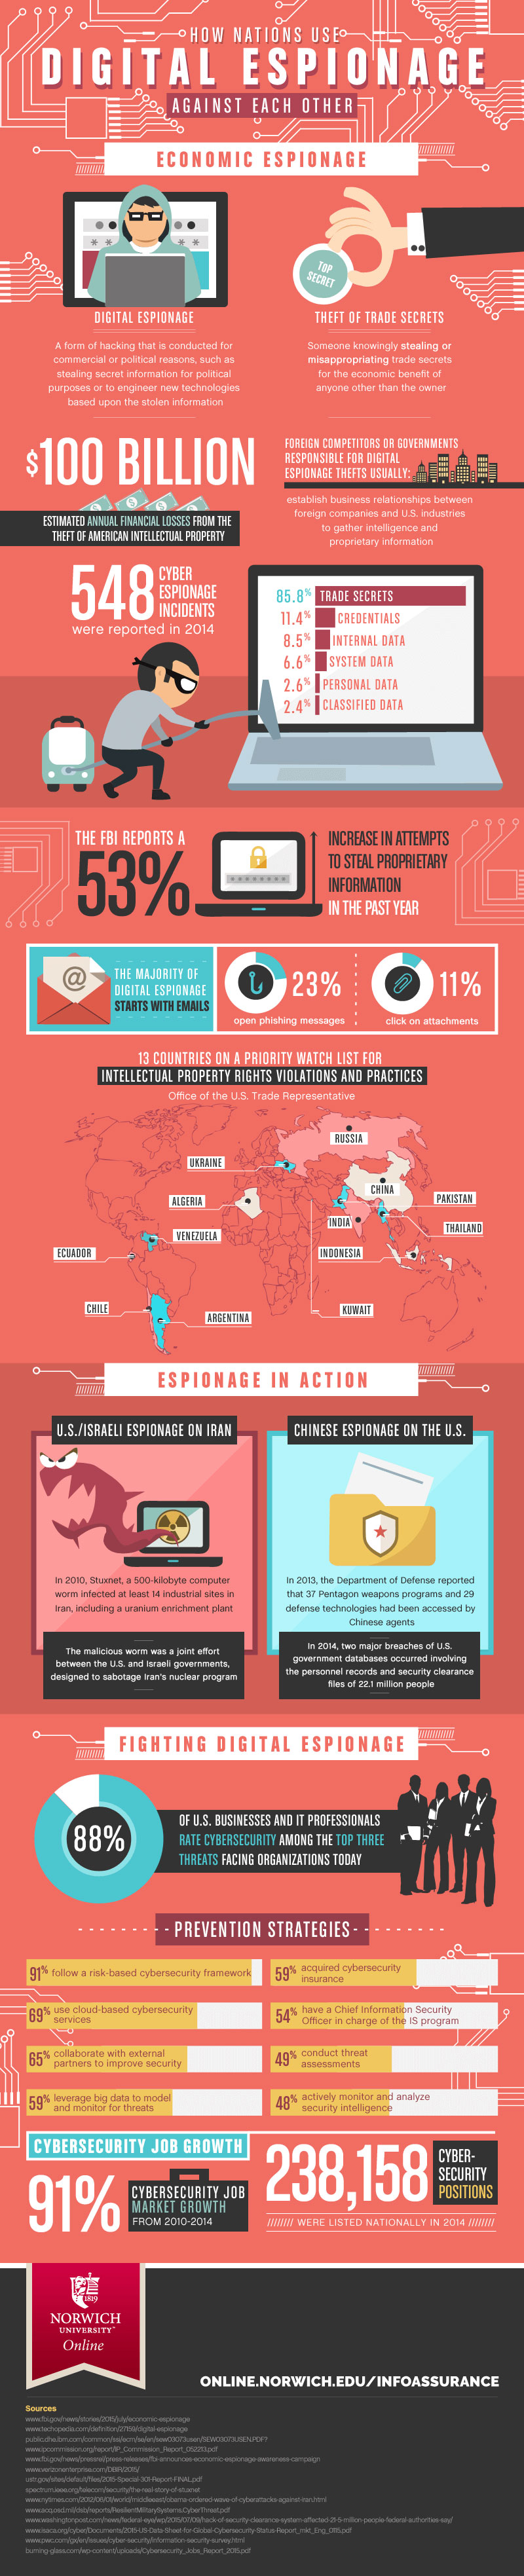 The age of digital espionage Infographic